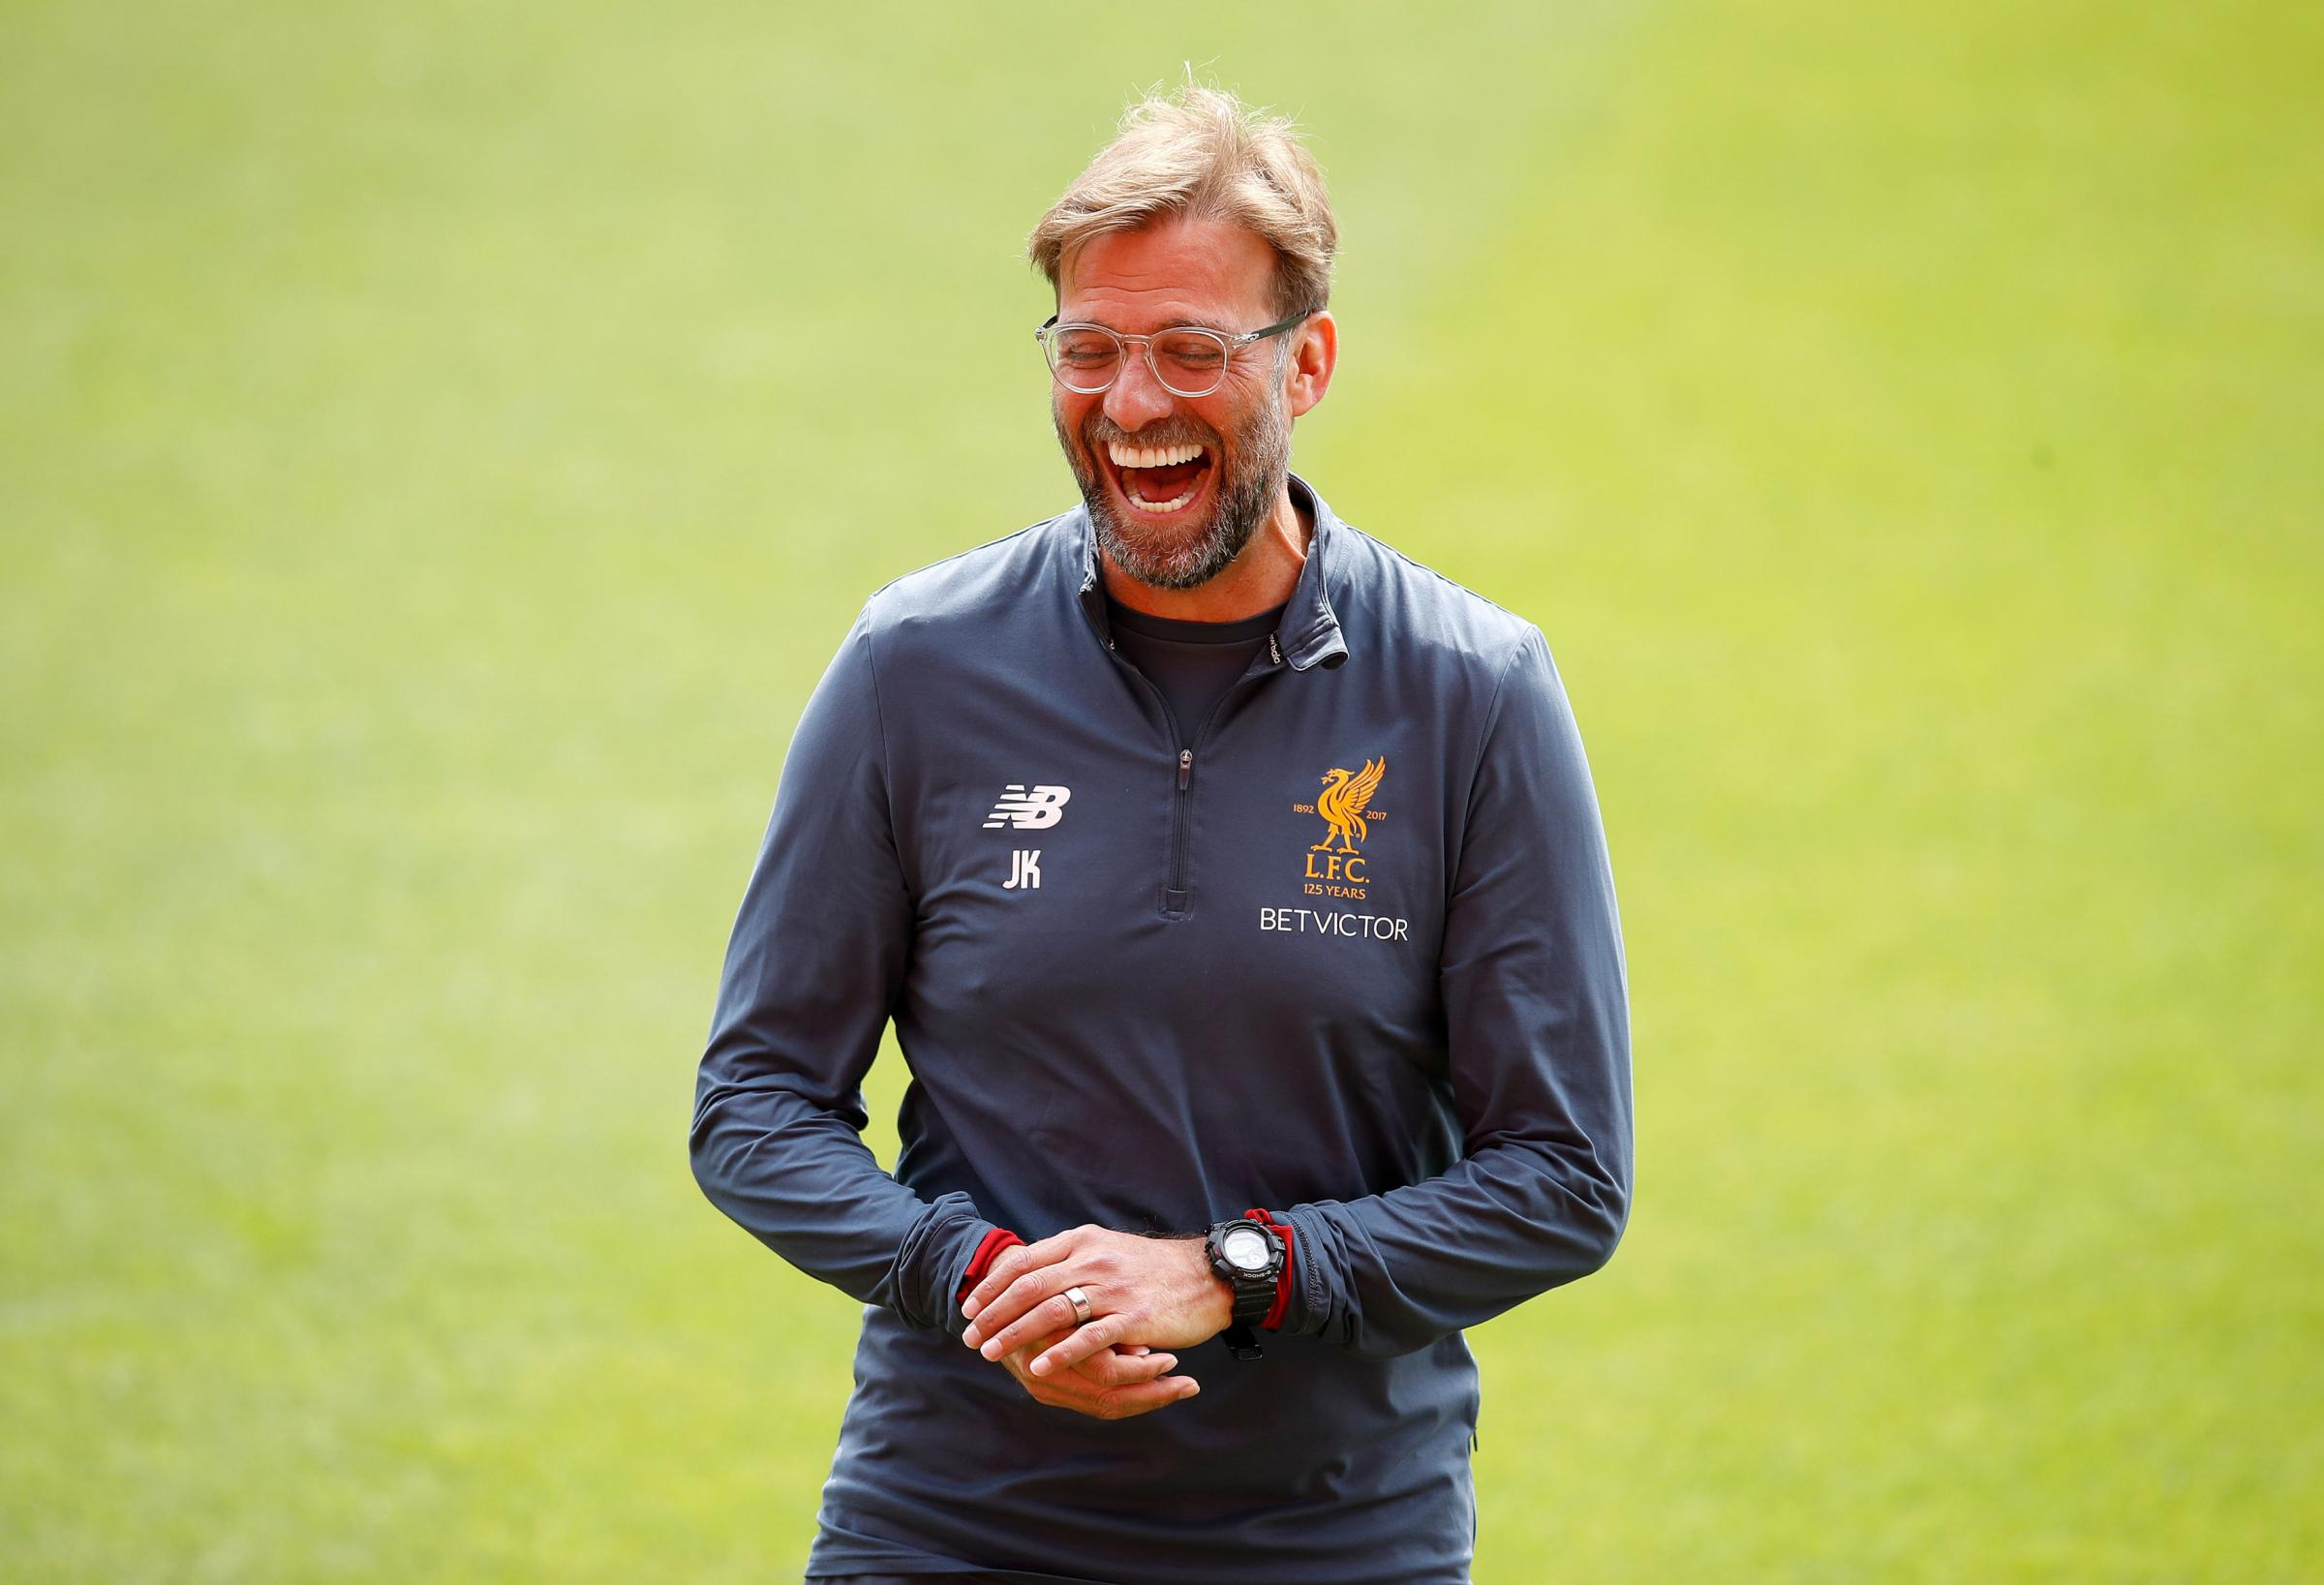 ALL SMILES: Jurgen Klopp has had a successful summer transfer window, with Allison set to be the latest player to move to Anfield